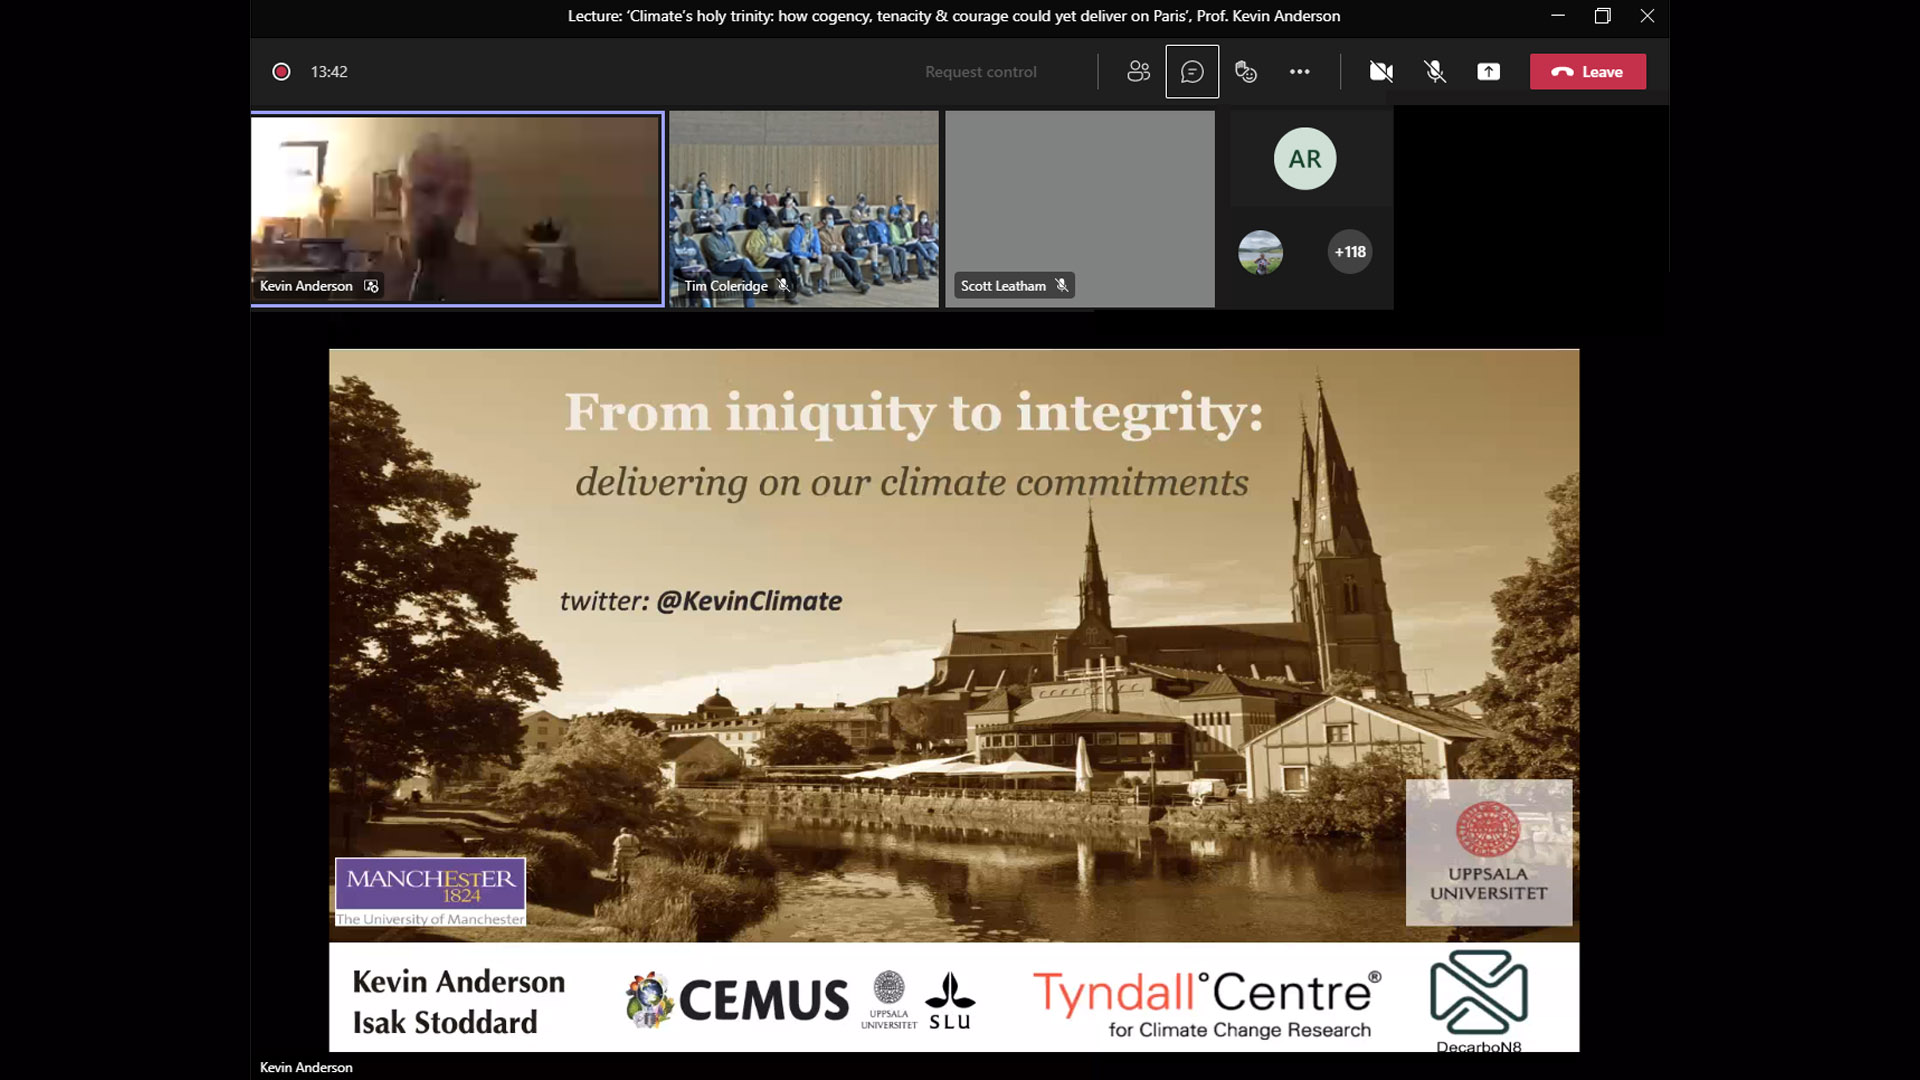 Kevin Anderson online lecture